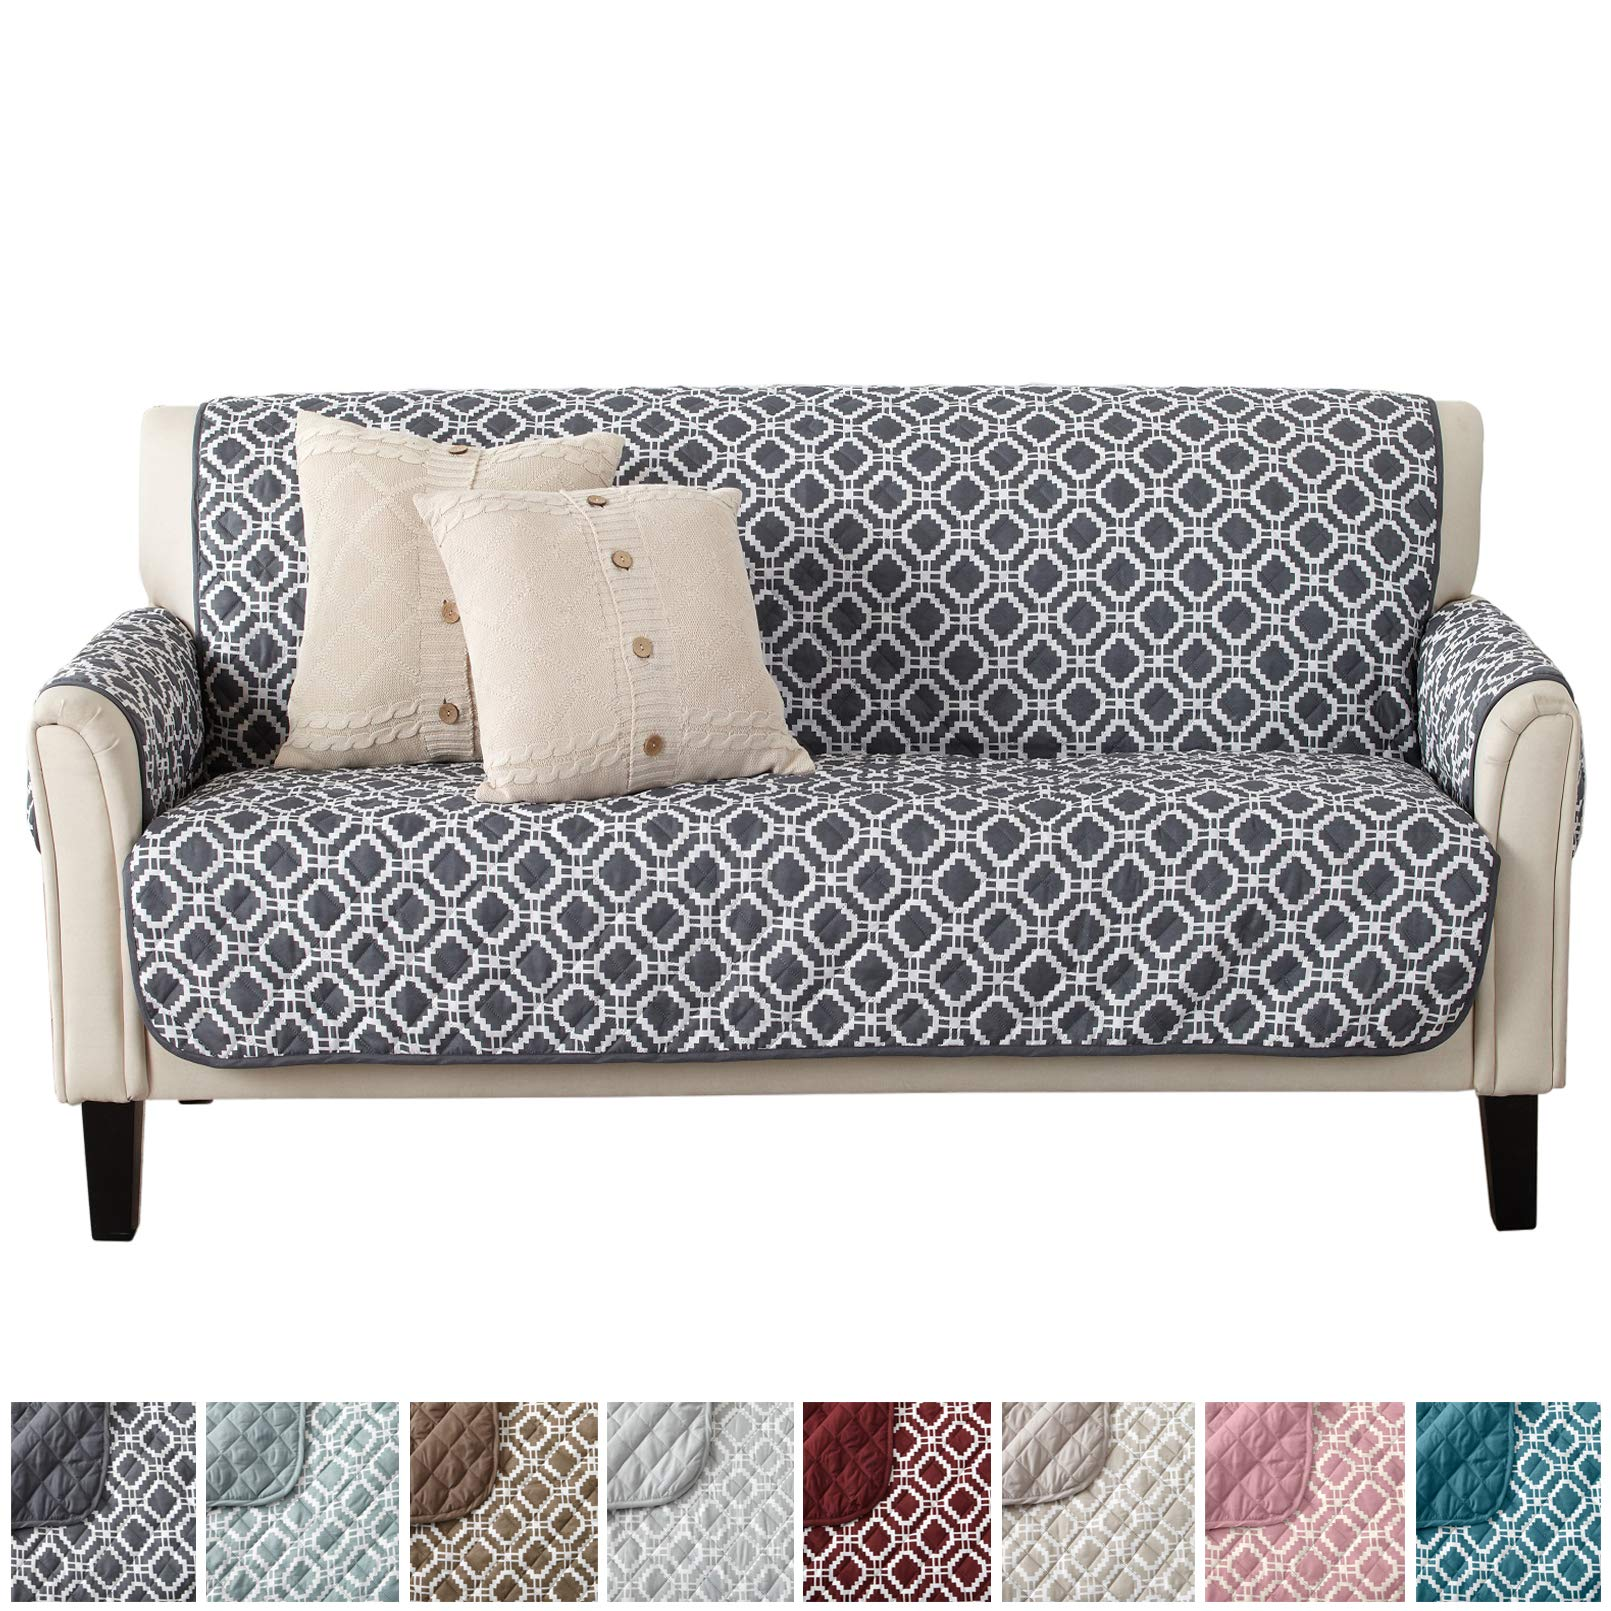 Modern Printed Reversible Stain Resistant Furniture Protector with Geometric Design. Perfect Cover for Pets and Kids. Adjustable Elastic Straps Included. Liliana Collection (Sofa, Steel Grey)